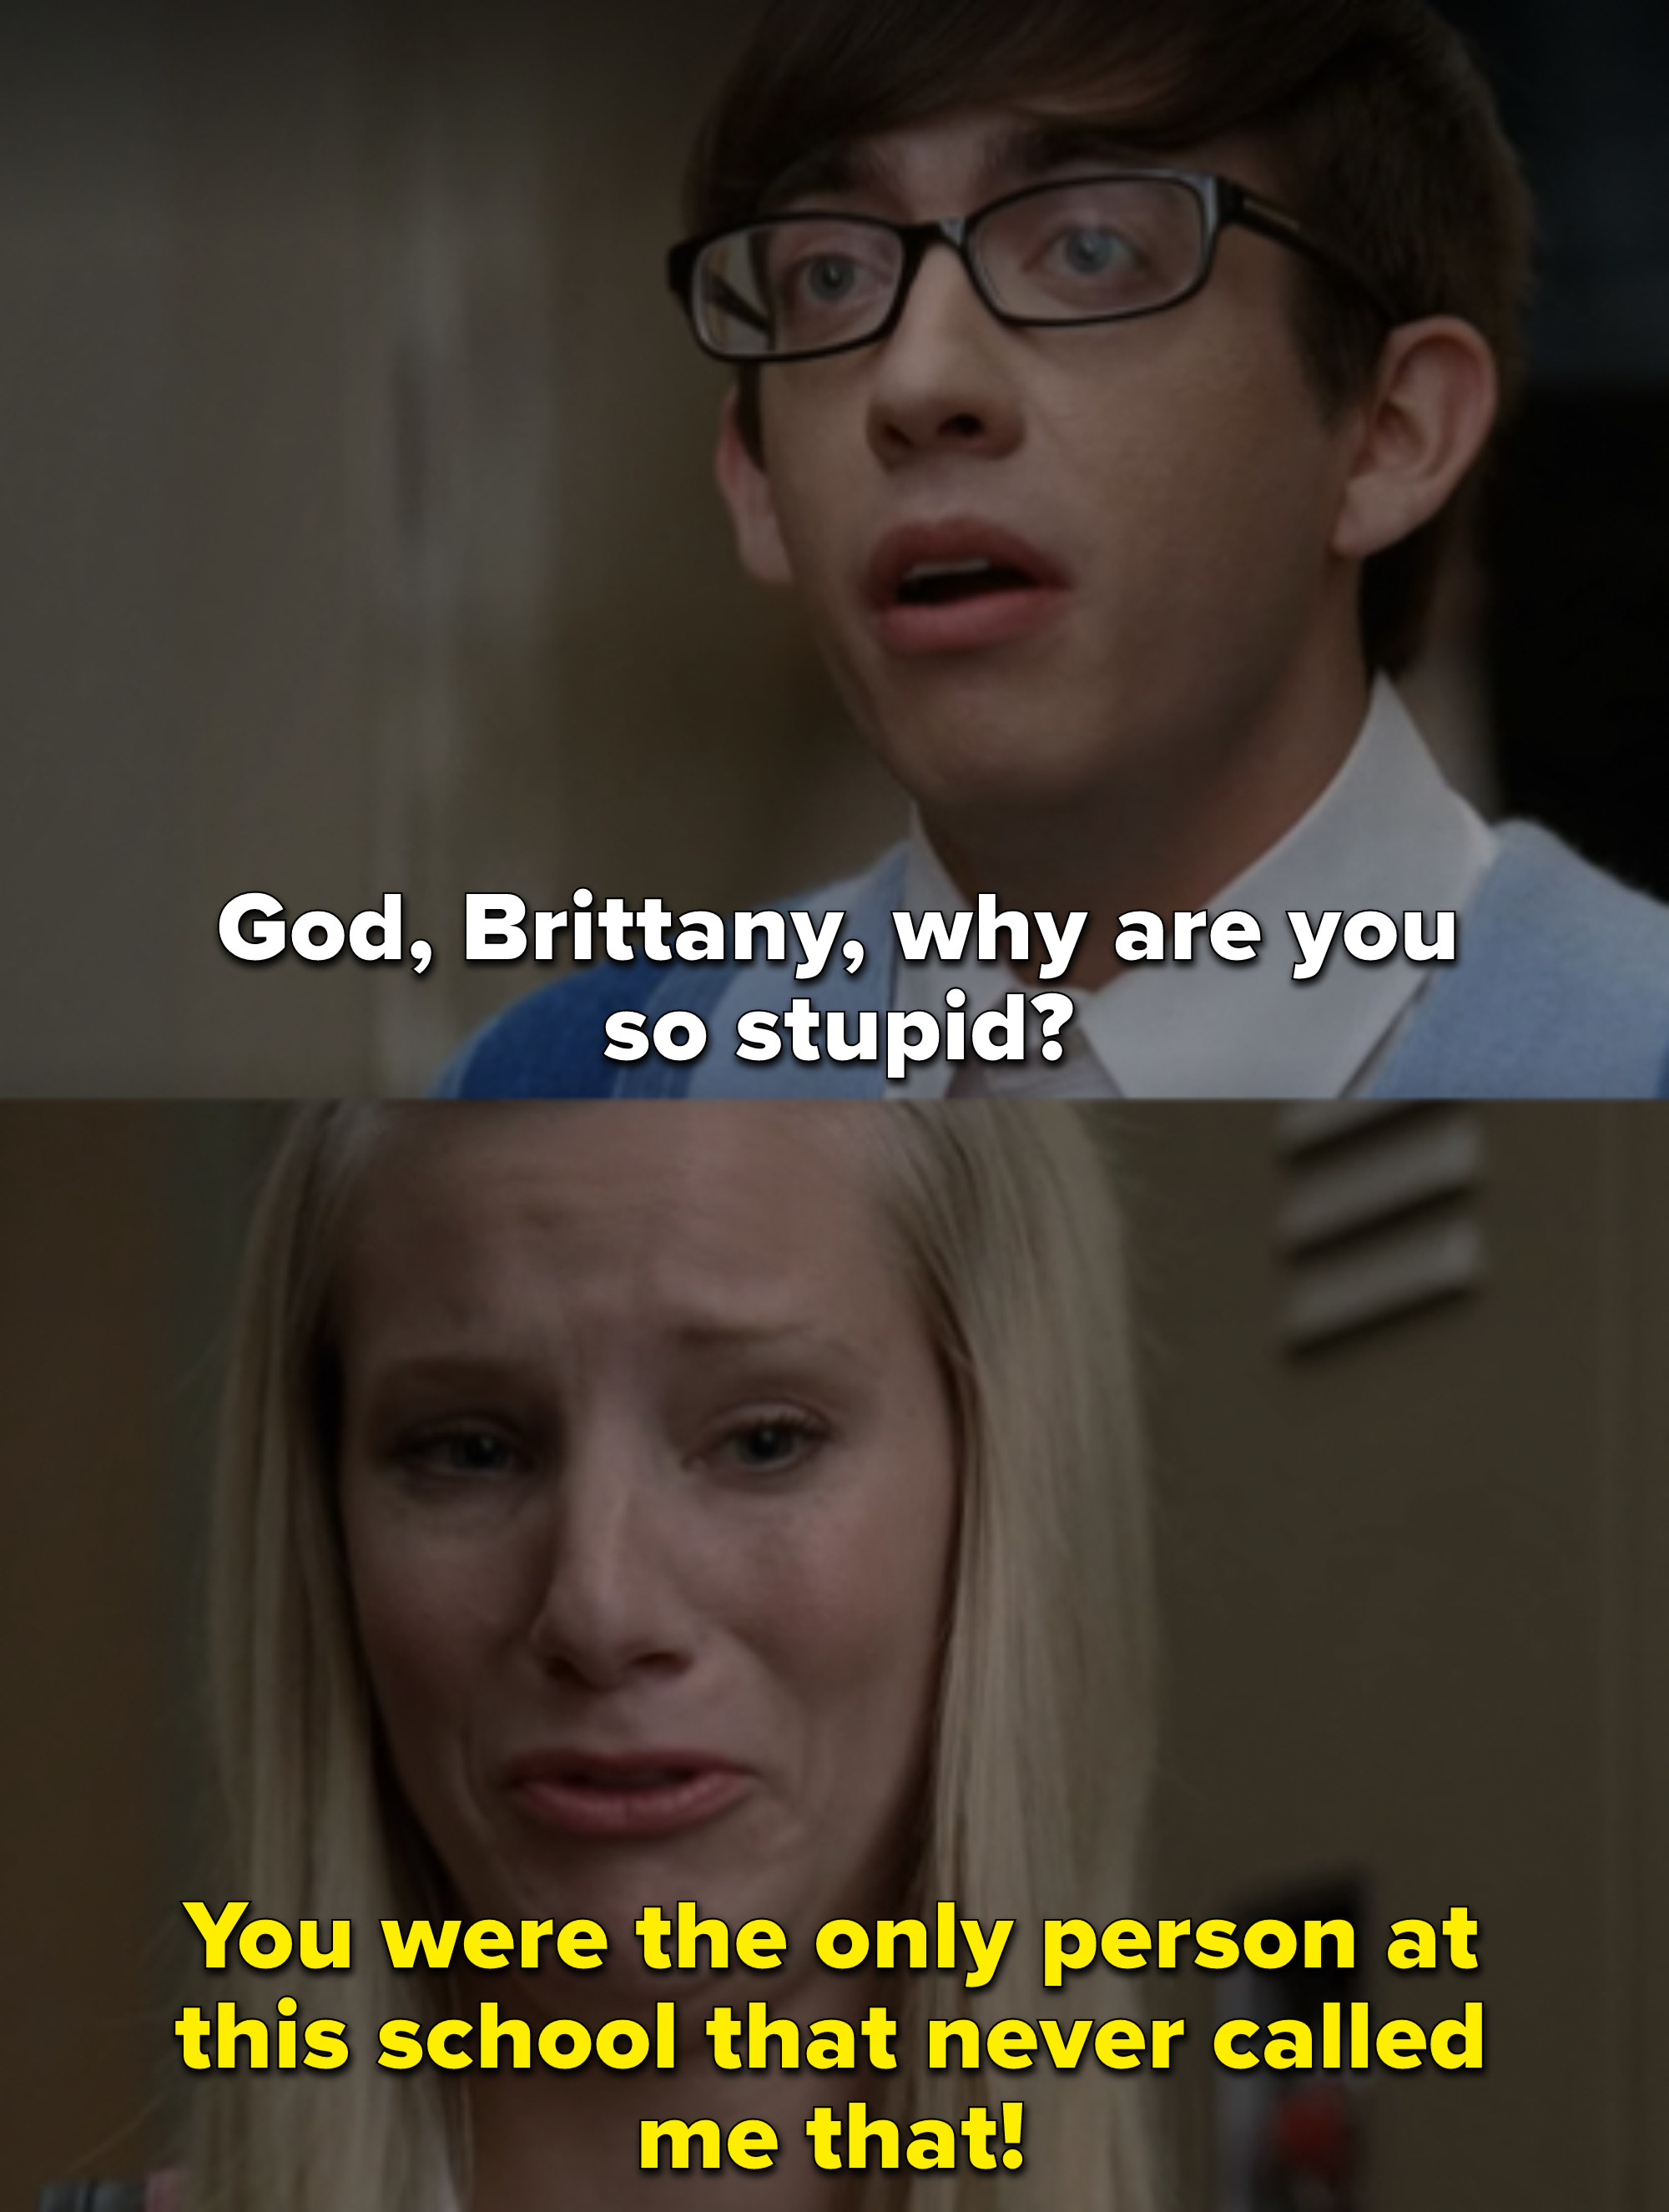 """Artie: """"God Brittany, why are you so stupid?"""" Brittany: """"You were the only person at this school that never called me that"""""""